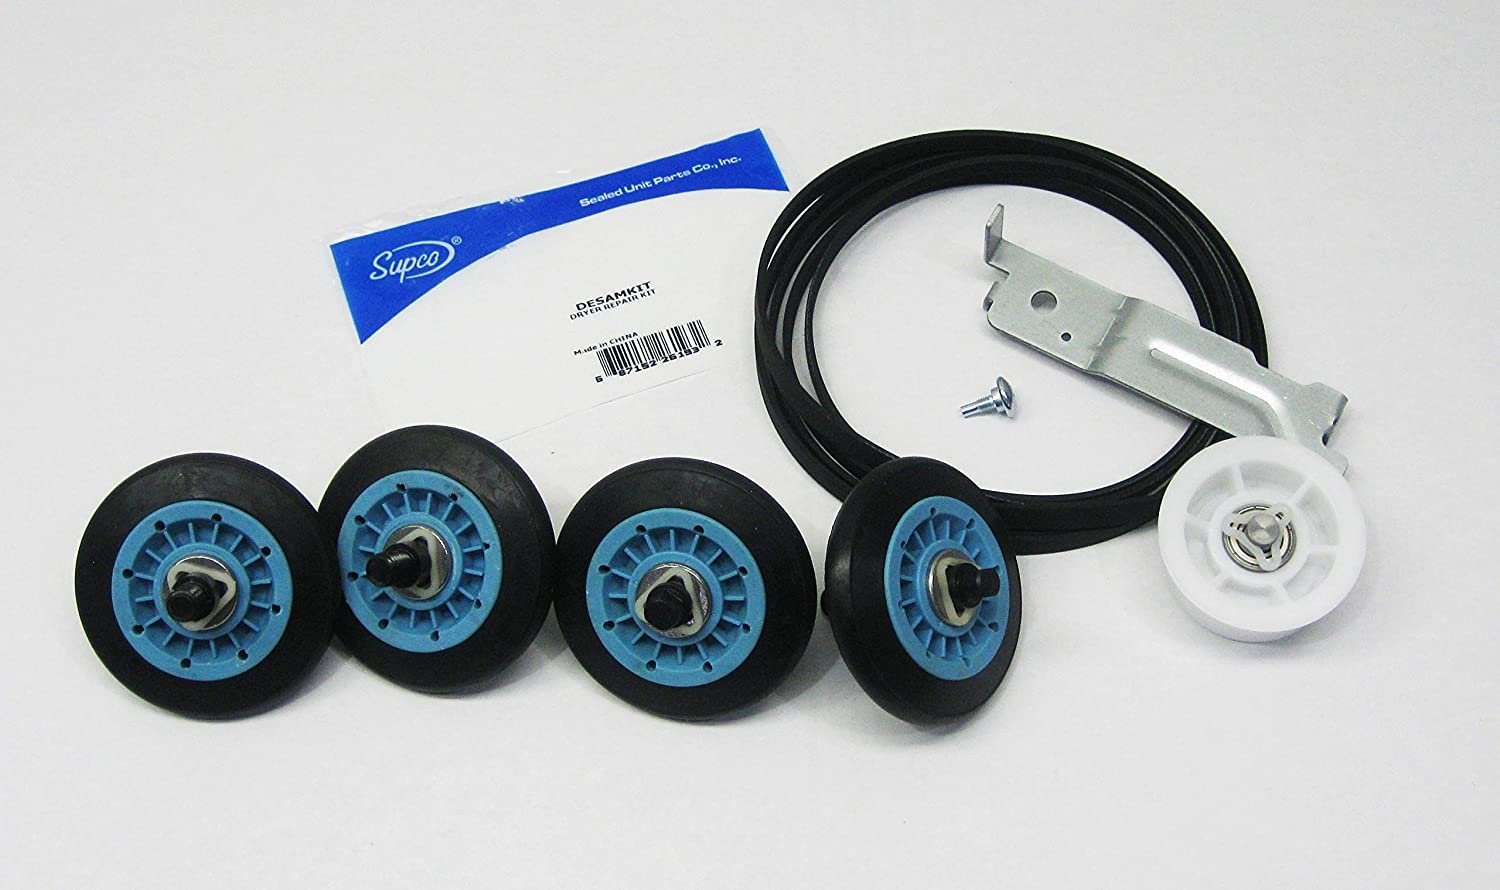 Samsung Dryer Repair Kit